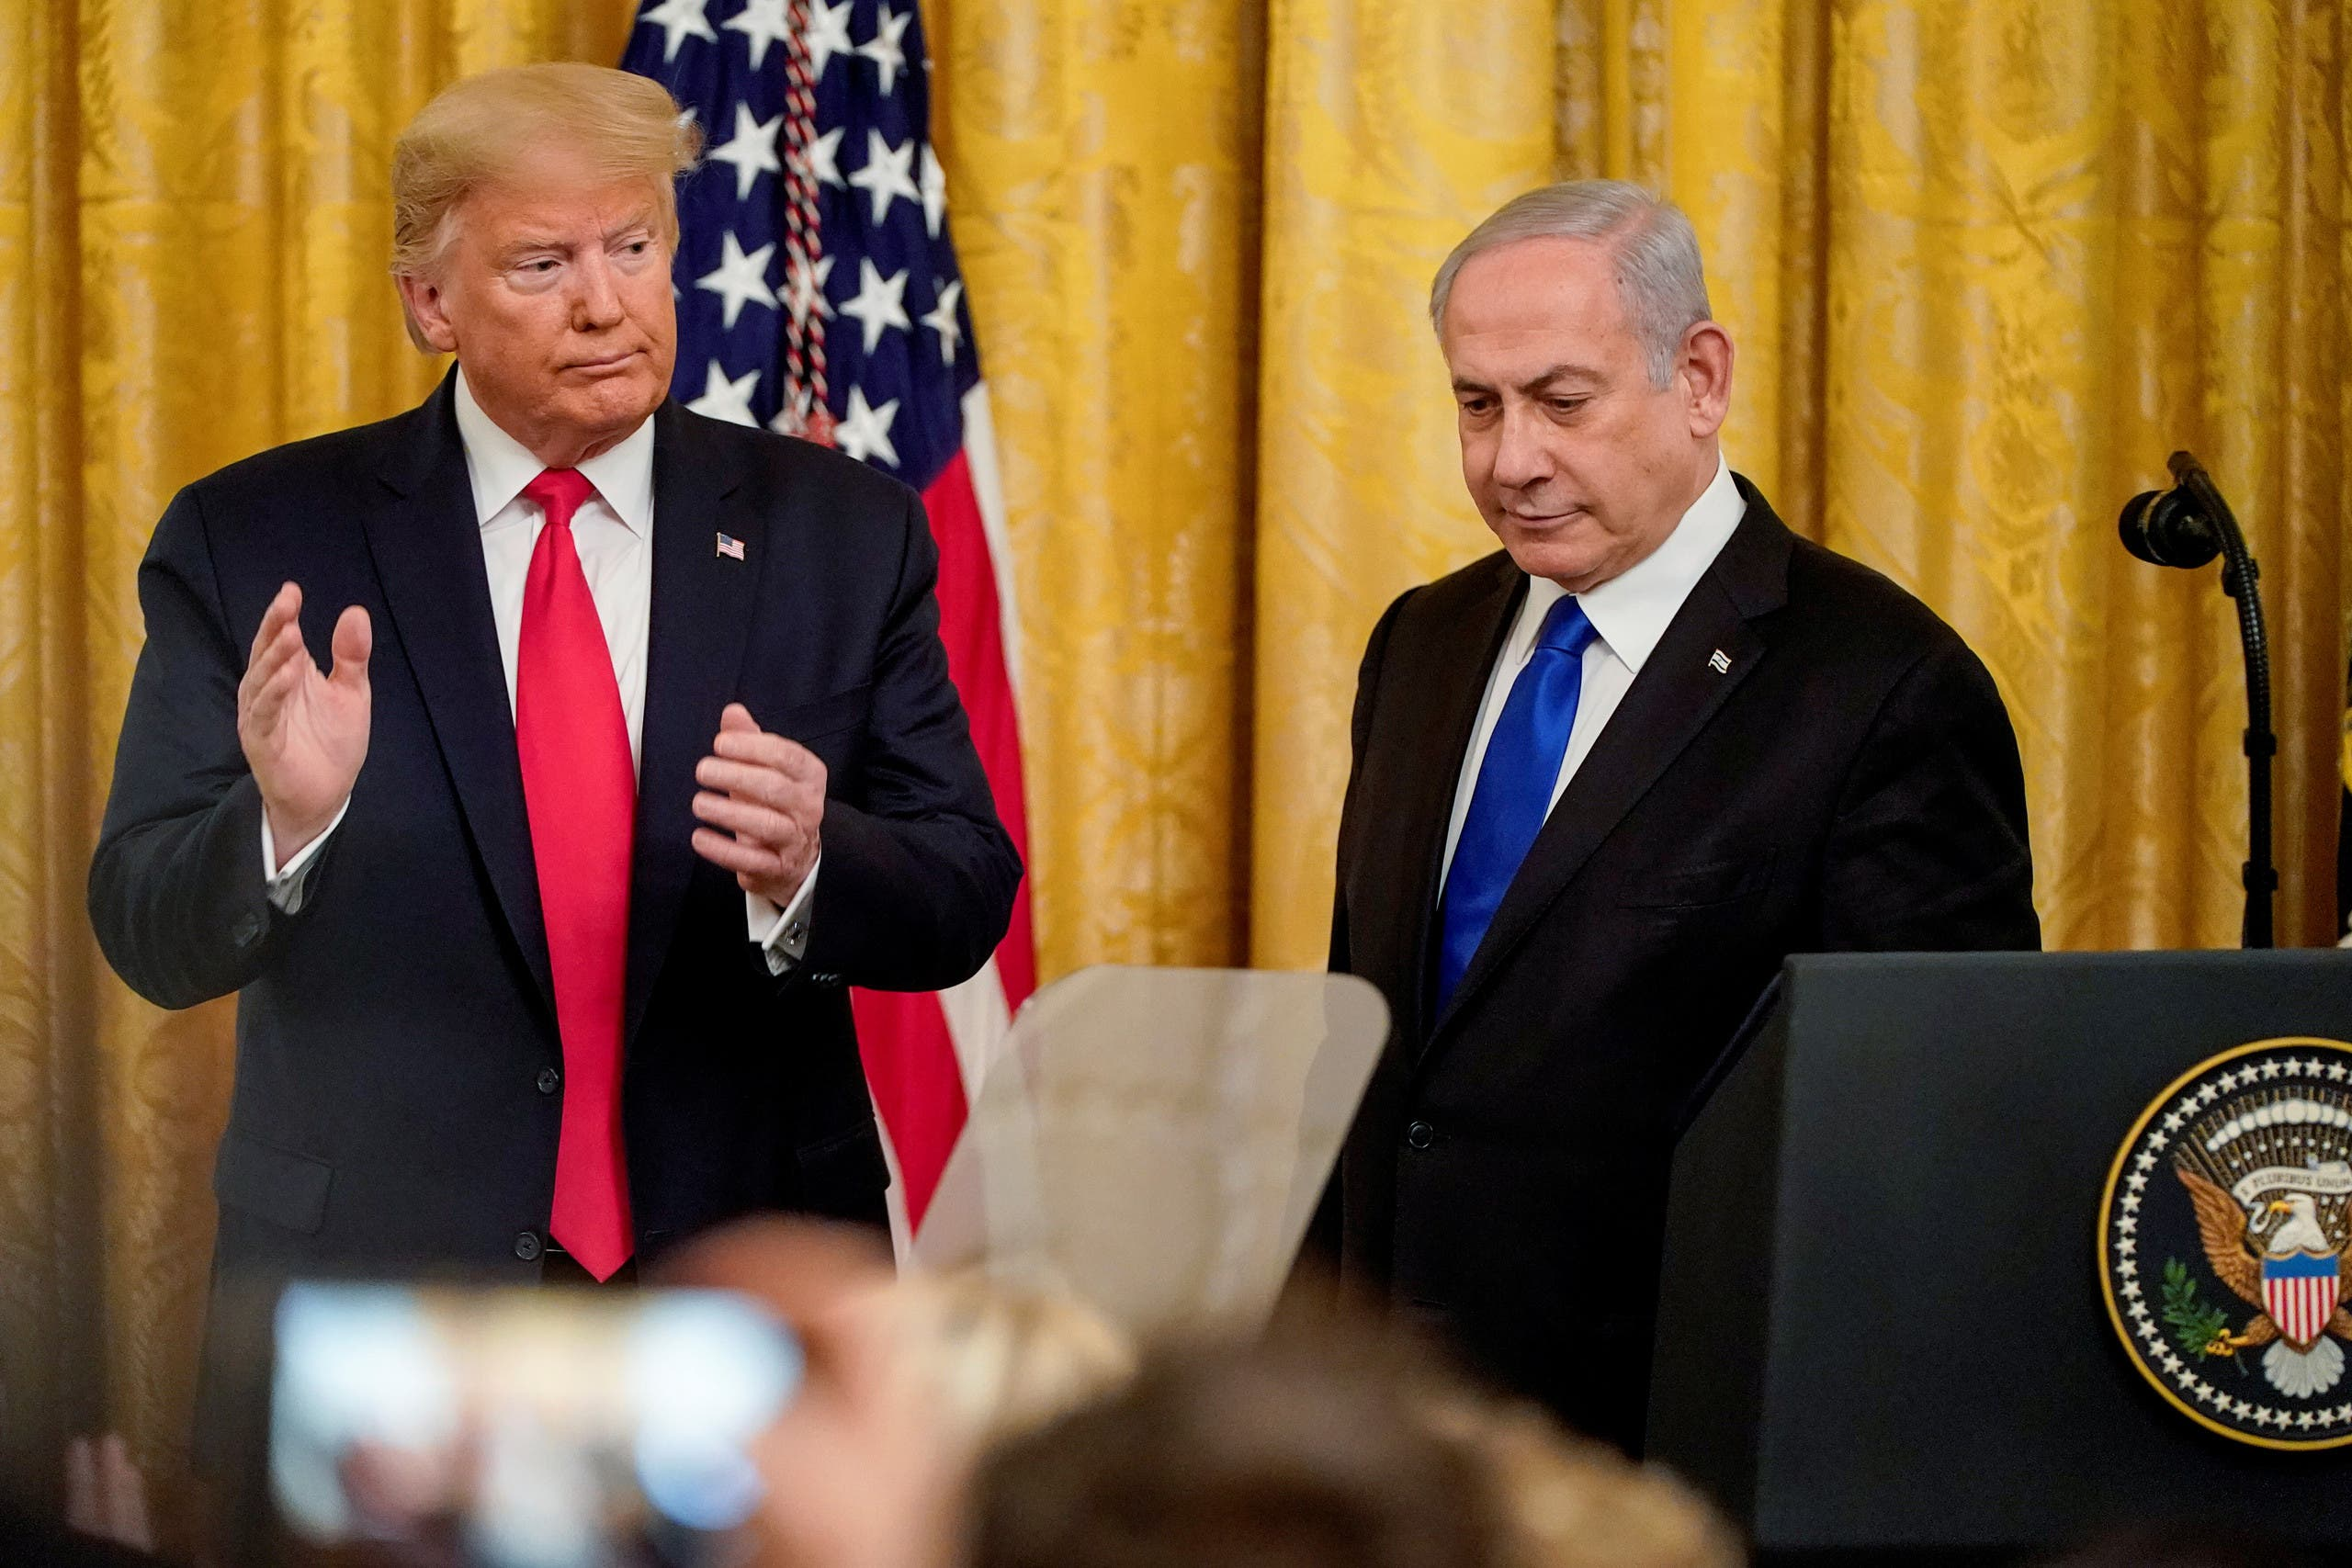 Trump applauds Netanyahu as they deliver joint remarks to discuss a Middle East peace plan at the White House in Washington, US, January 28, 2020. (Reuters)